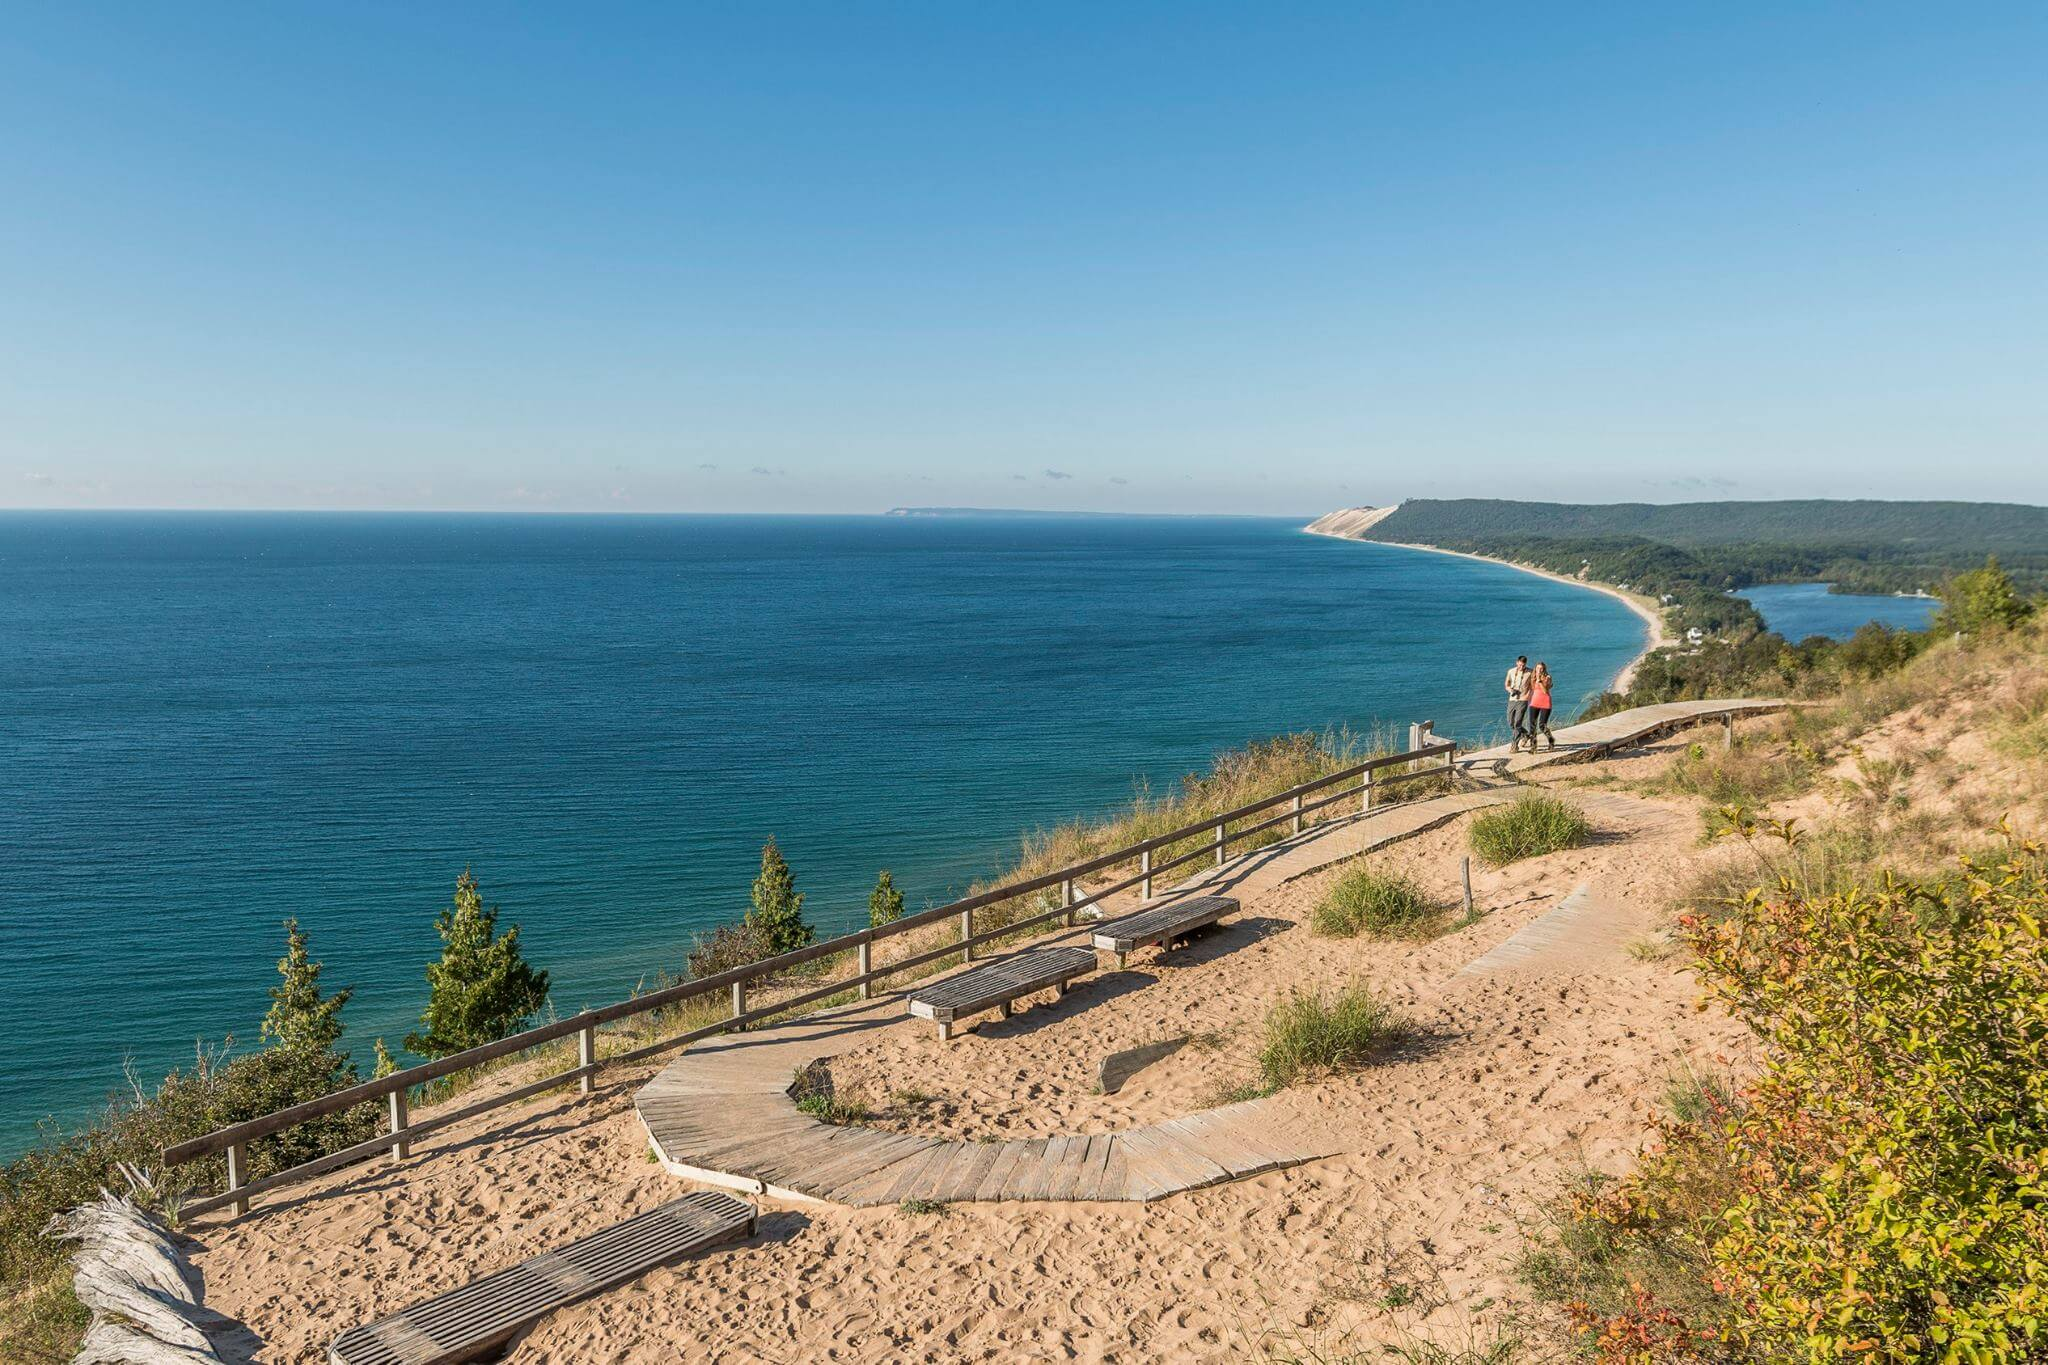 5 REASONS TO VISIT TRAVERSE CITY THIS FALL